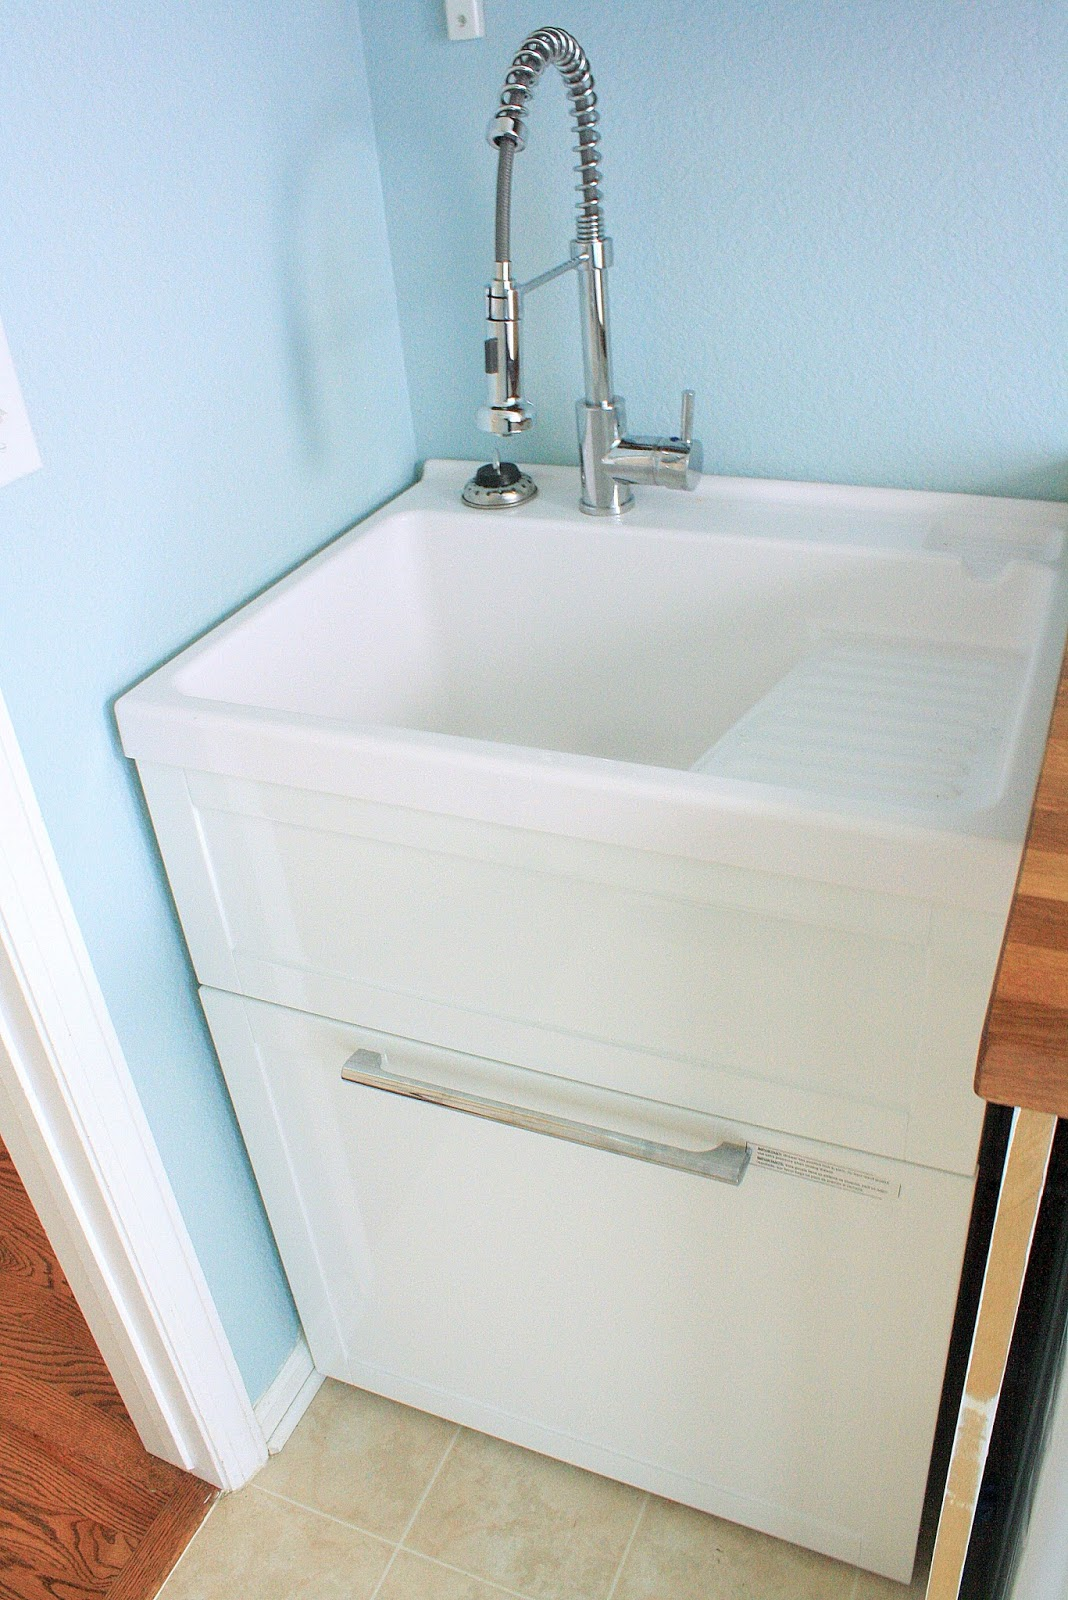 Ove Utility Sink With Cabinet Ask Home Design